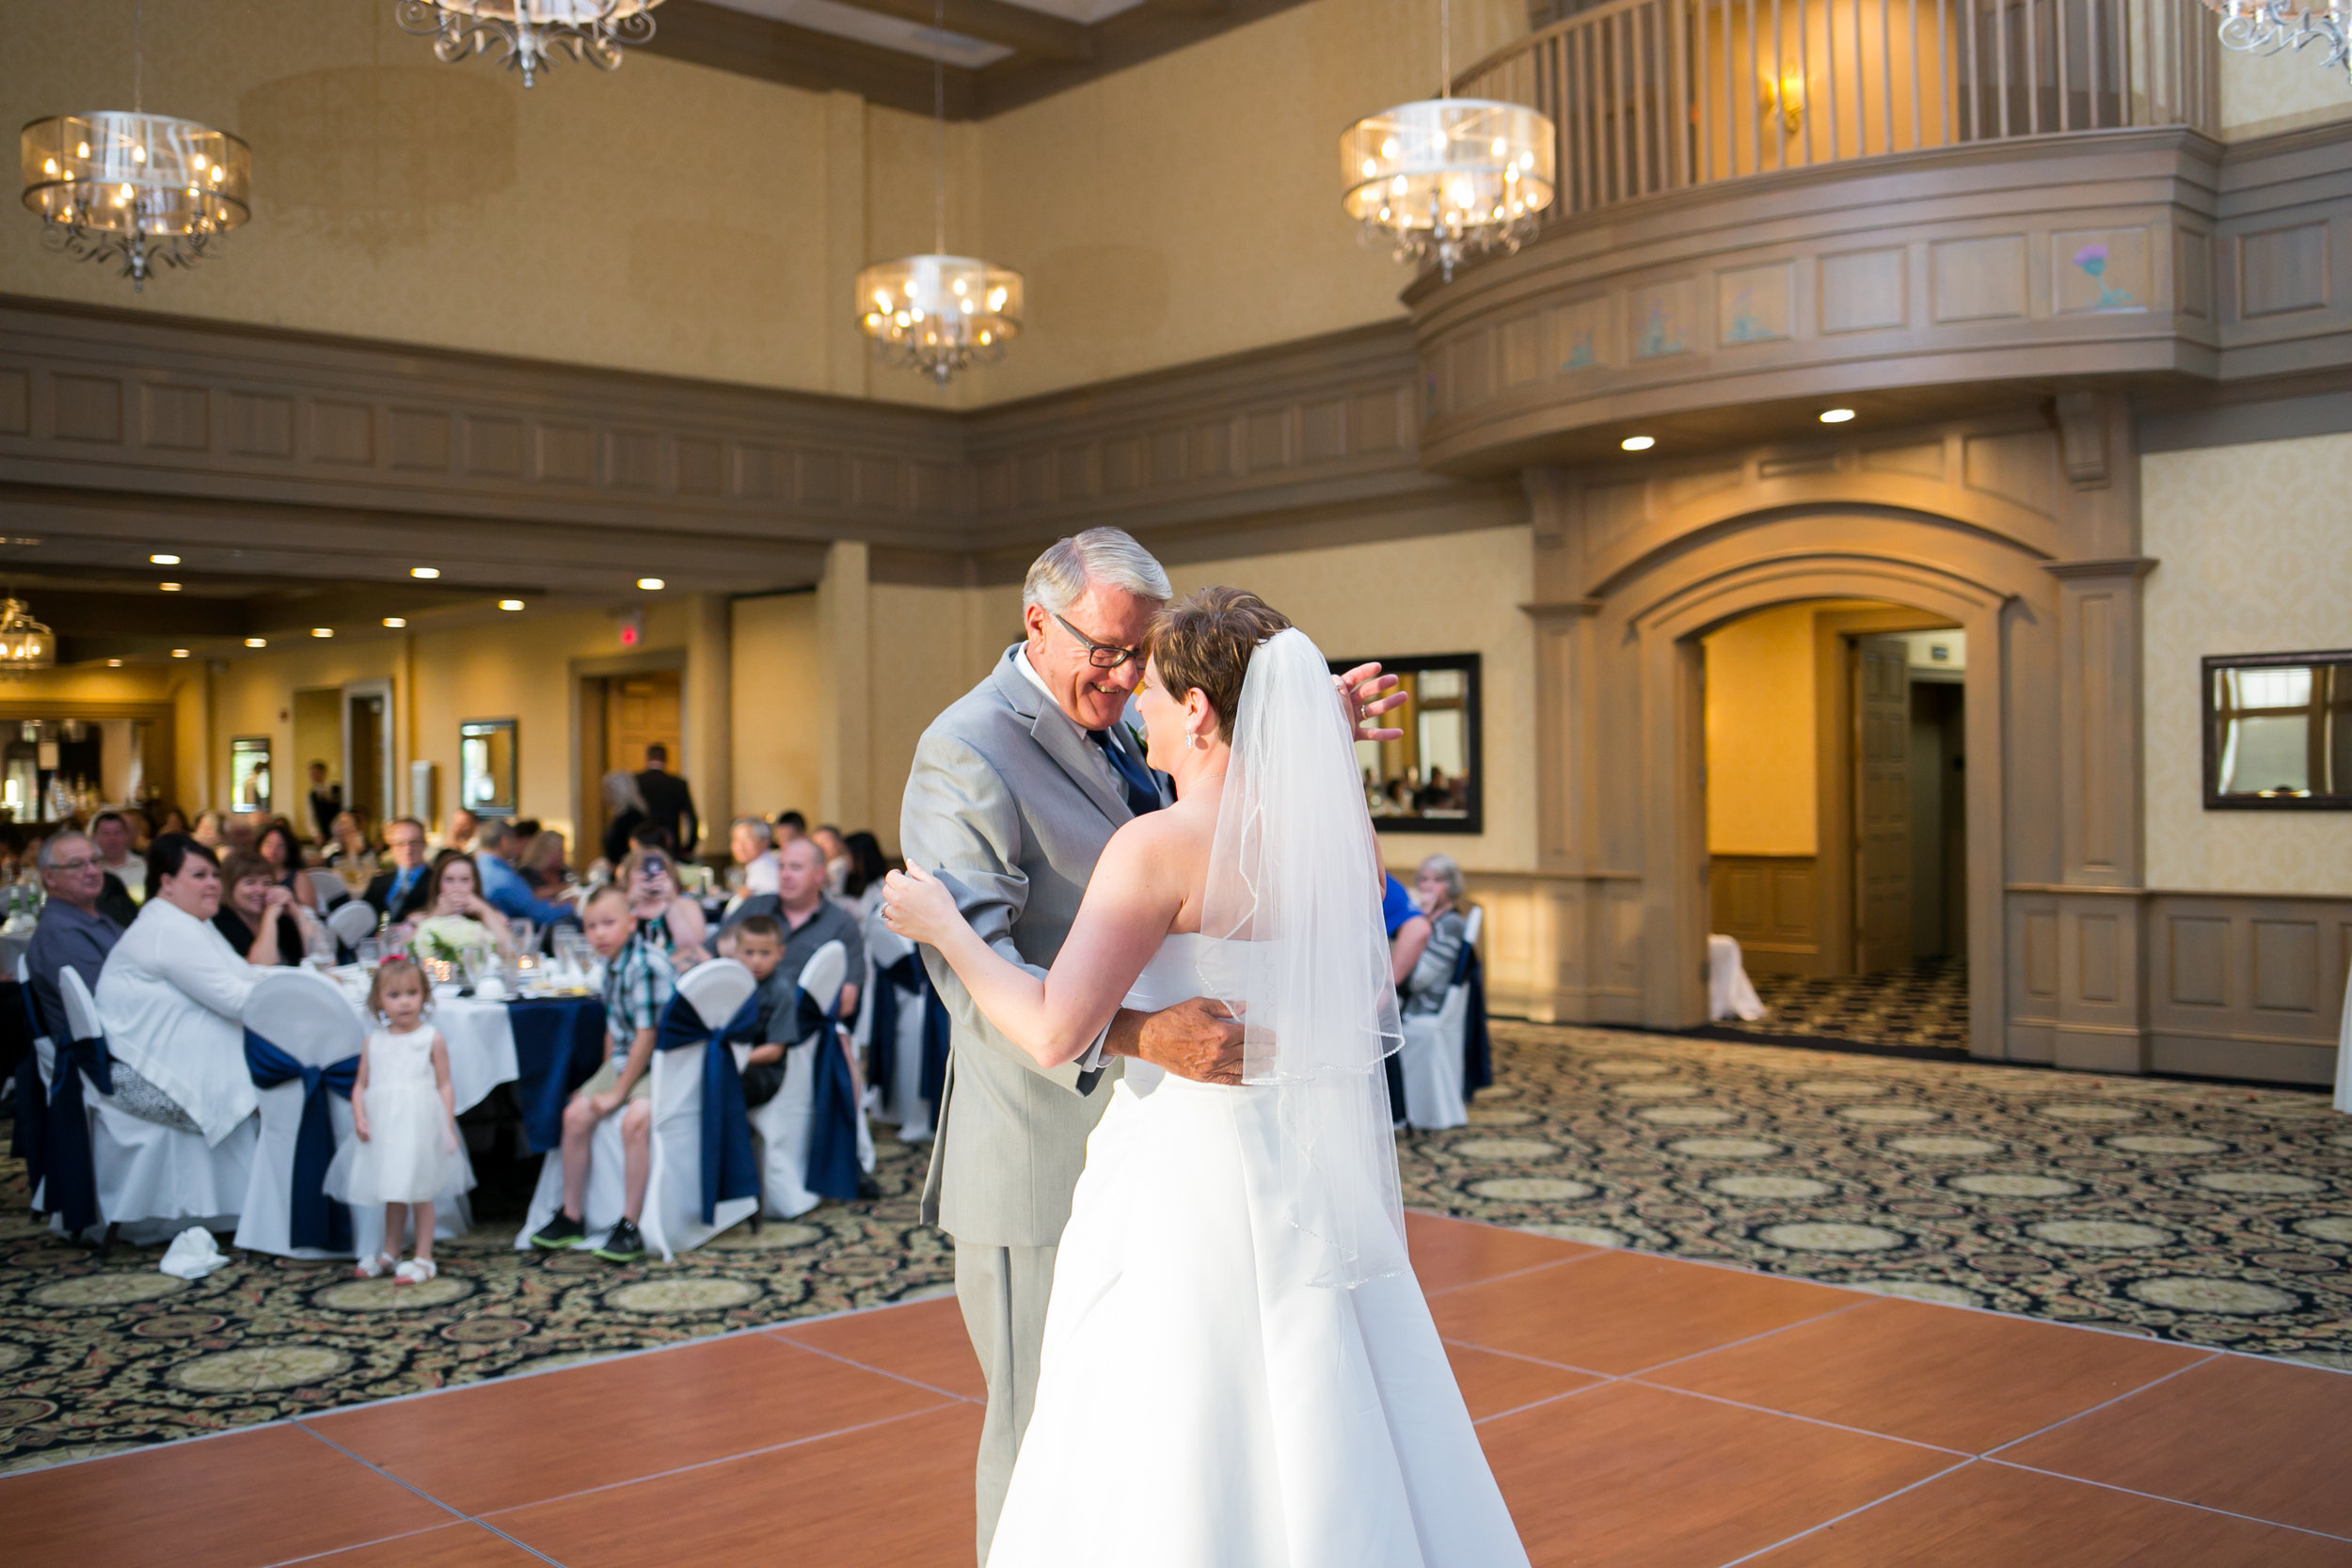 Rush Creek Golf Club Maple Grove MN Wedding (38 of 46).jpg